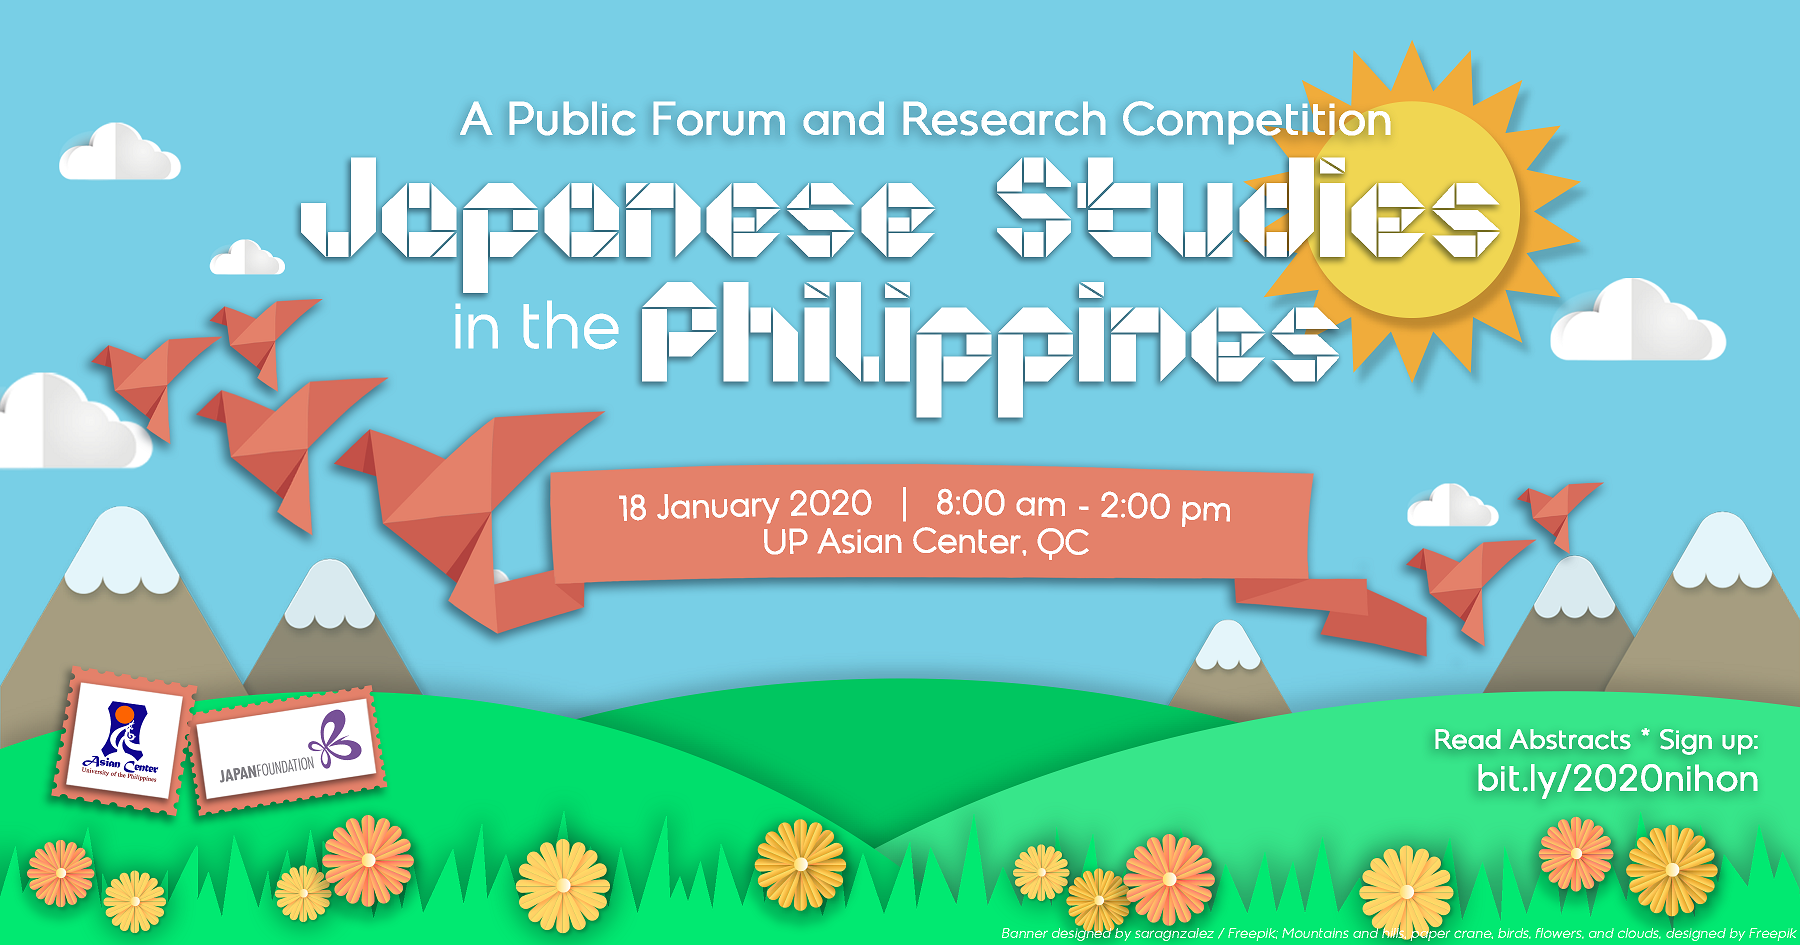 Japanese Studies in the Philippines: A Forum and Research Competition (18 Jan 2020)